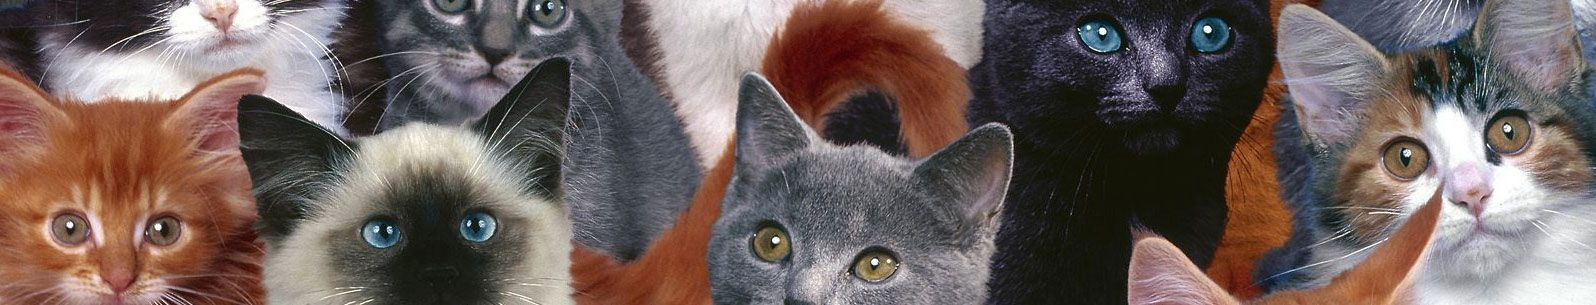 banner-many-cats.jpg